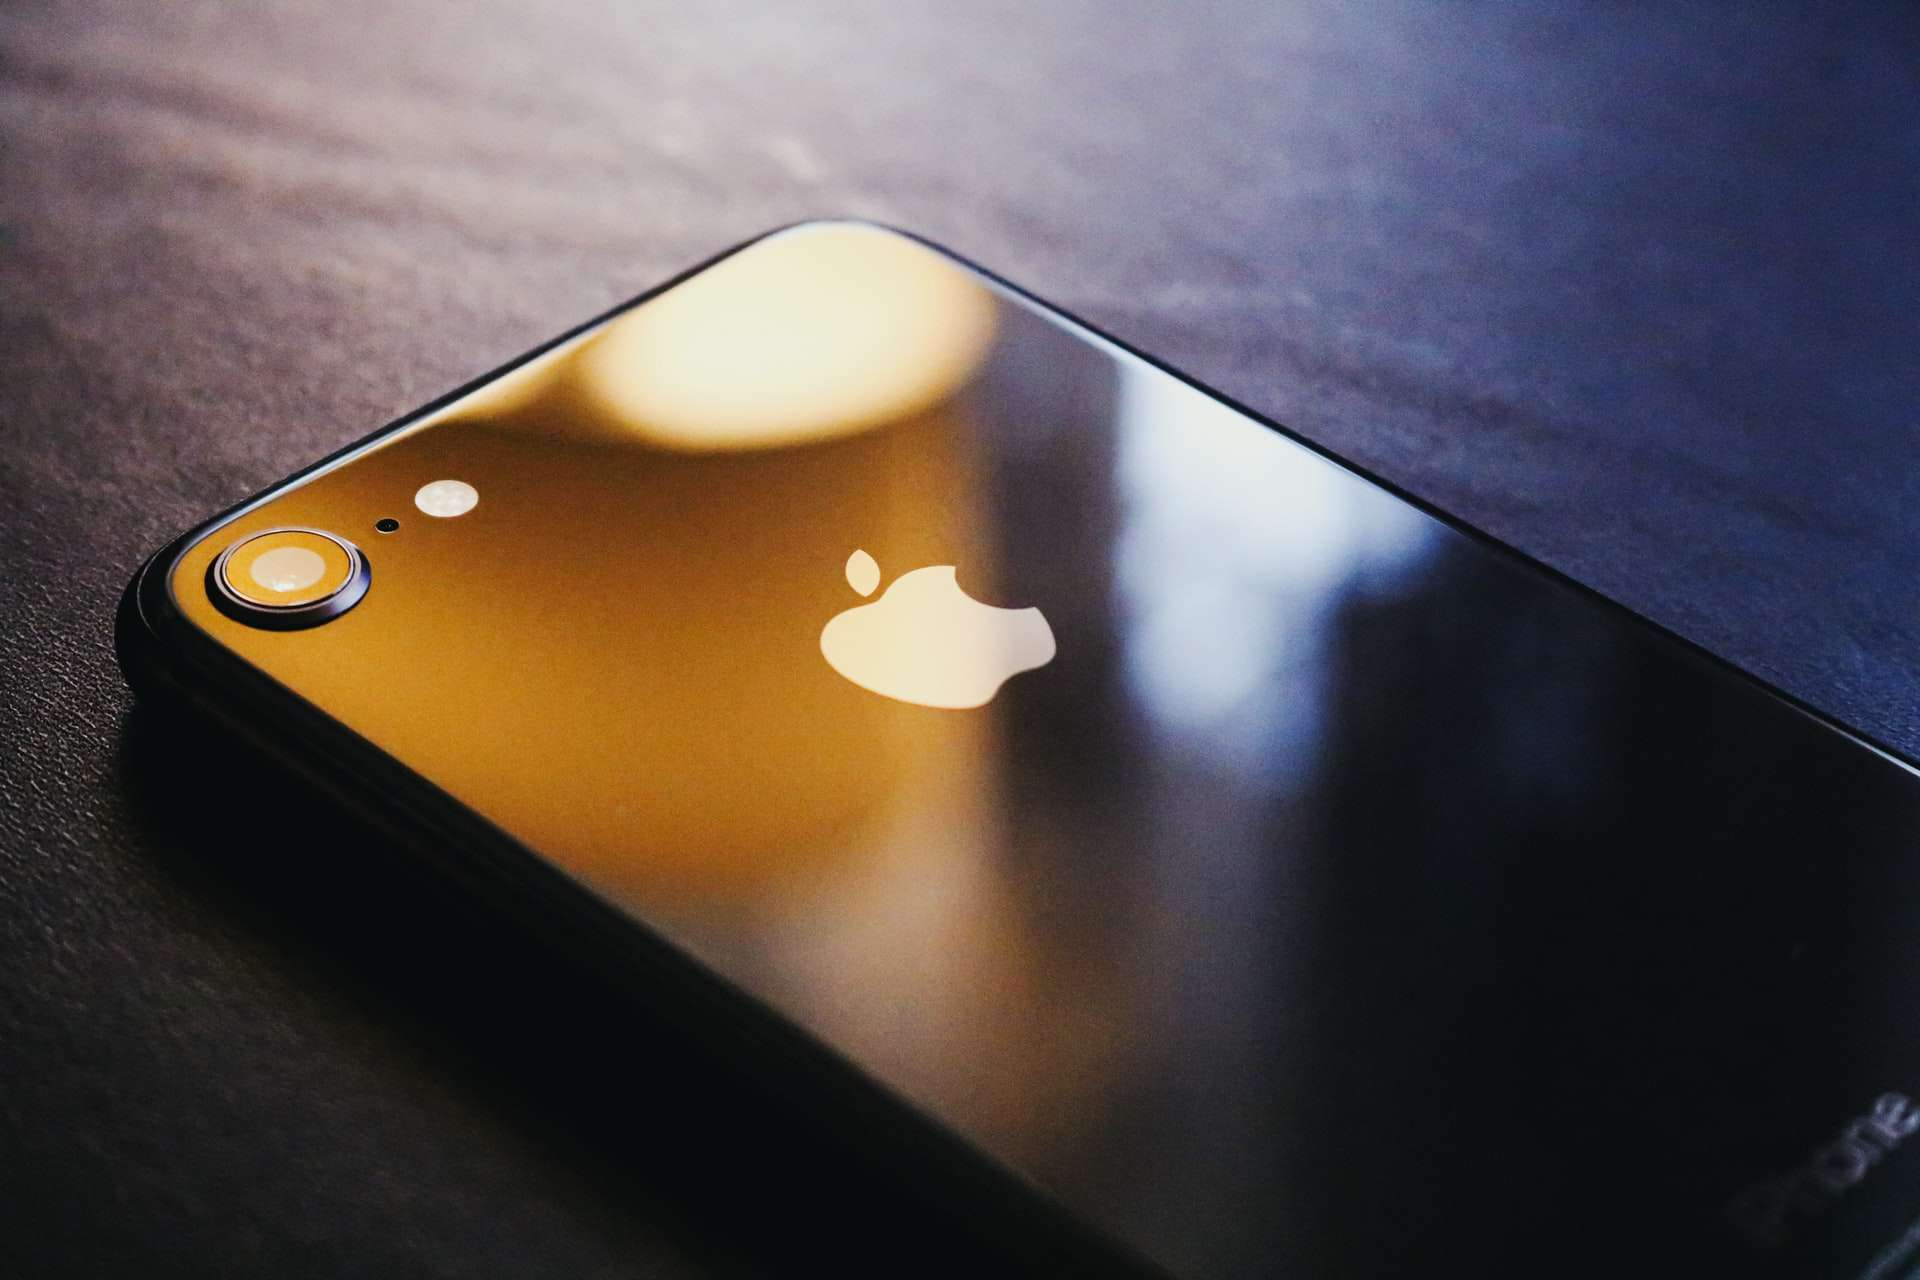 Apple iPhone face down on a surface